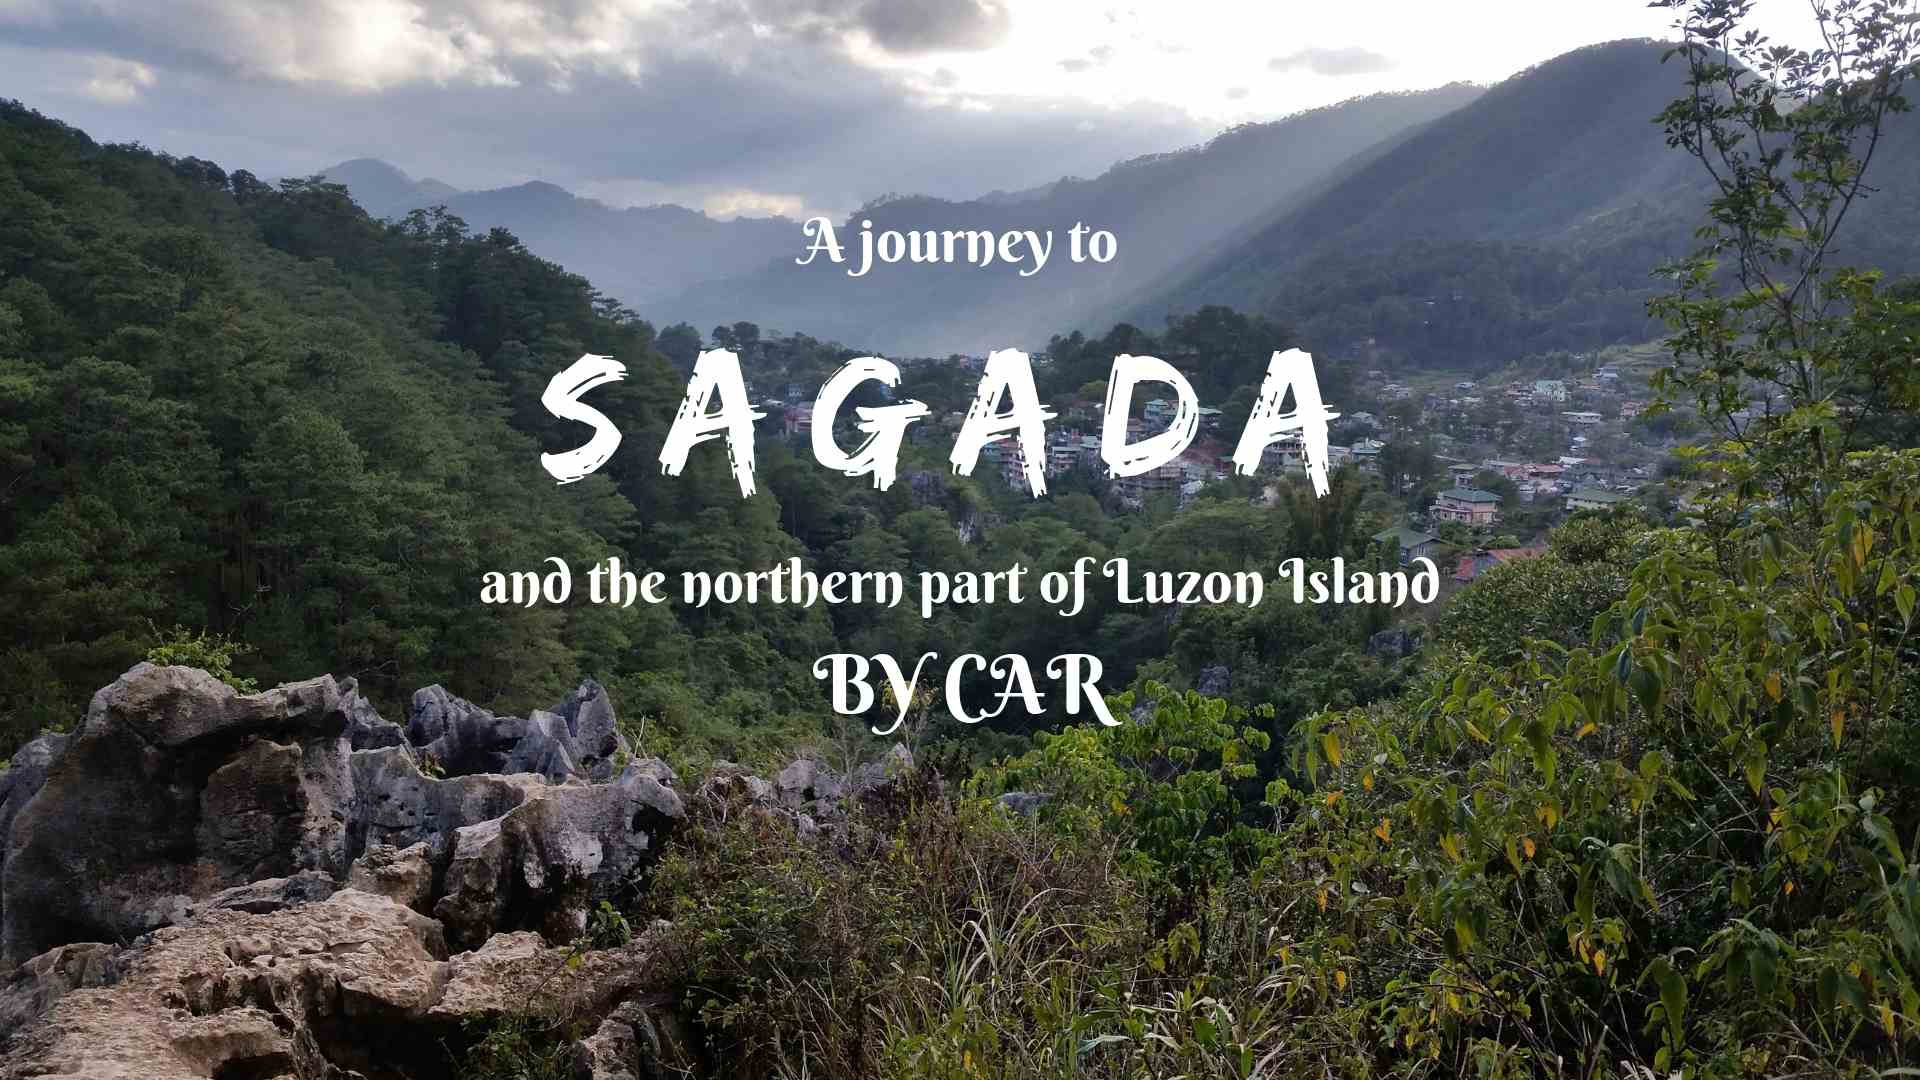 A JOURNEY TO SAGADA AND THE NORTHERN PART OF LUZON ISLAND BY CAR